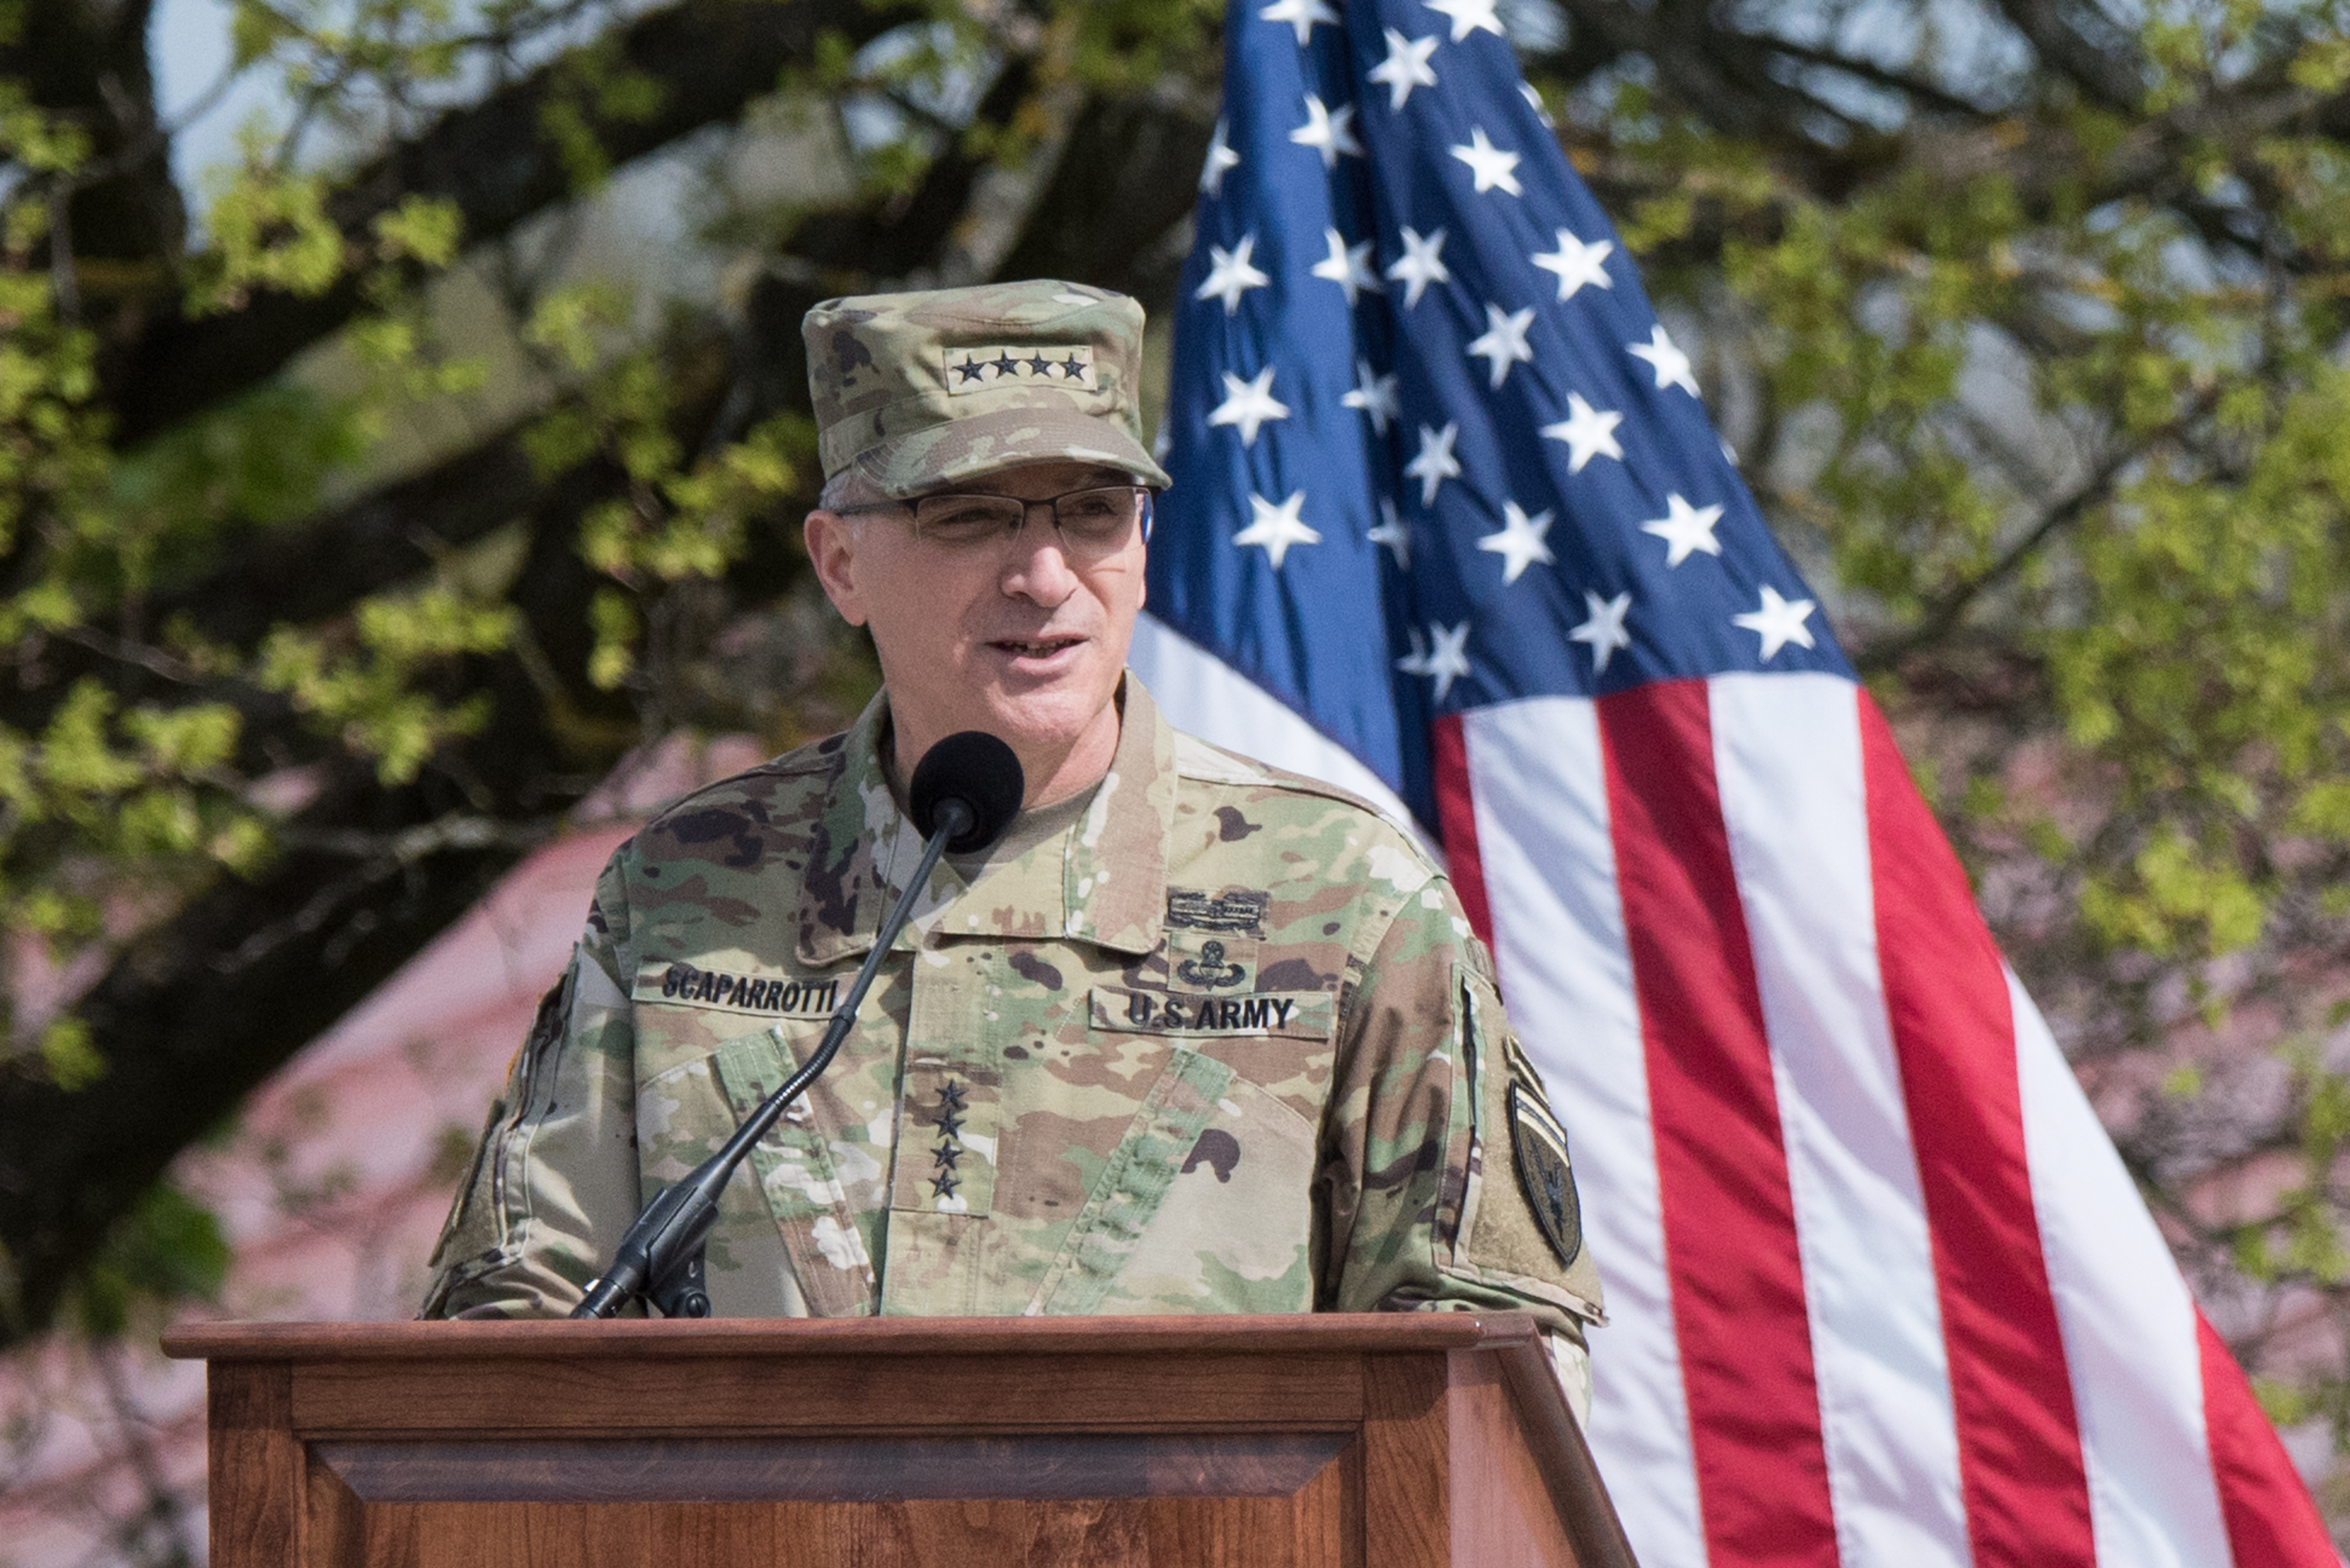 U.S. European Command commander Gen. Curtis M. Scaparrotti addresses the audience during the EUCOM change of command ceremony n Stuttgart, Germany, Tuesday, May 3, 2016.  (DoD photo by D. Myles Cullen/Released)